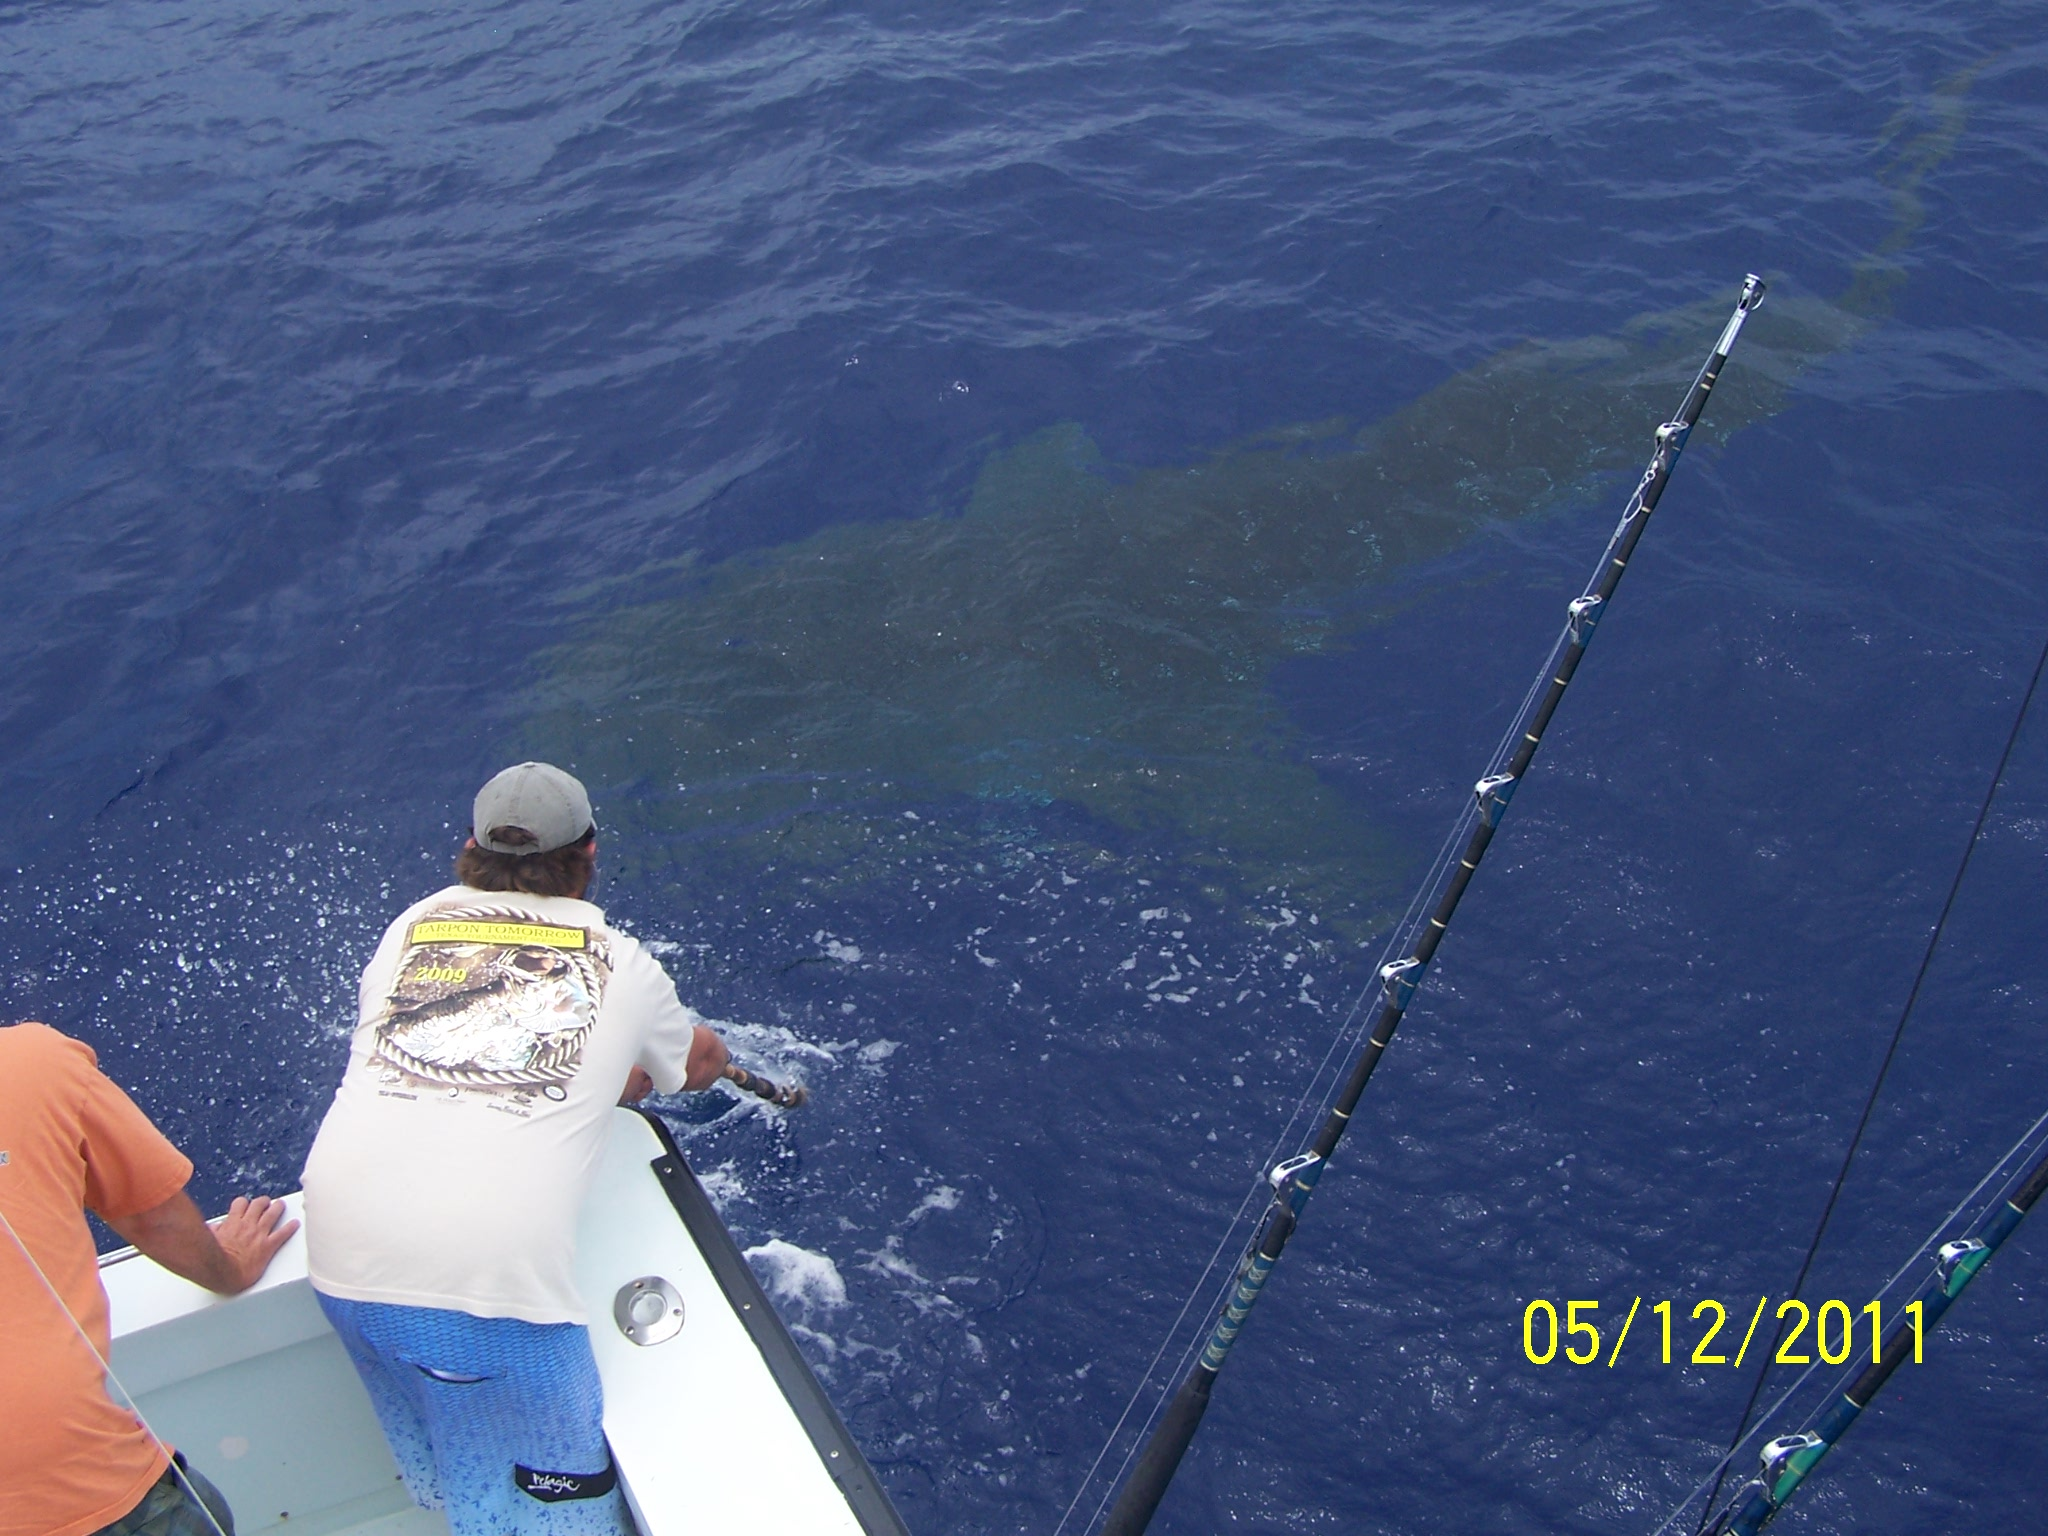 oahu sport fishing photos sent in maggie joe sport